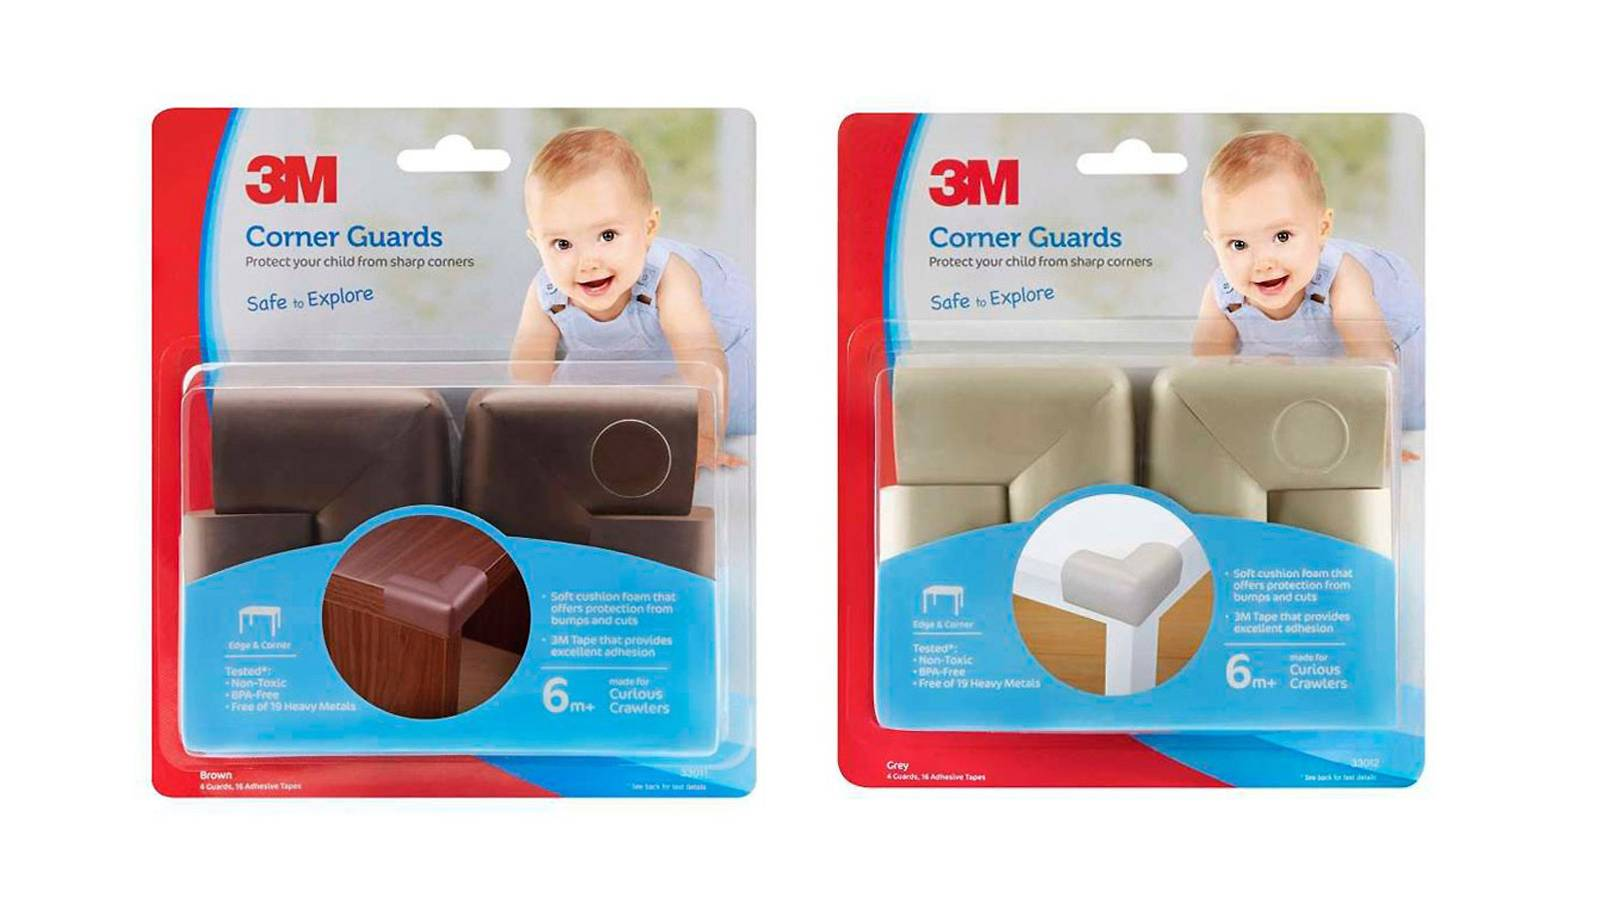 Babies-BUYER'S-GUIDE-Top-products-to-babyproof-your-home-3MCornerG